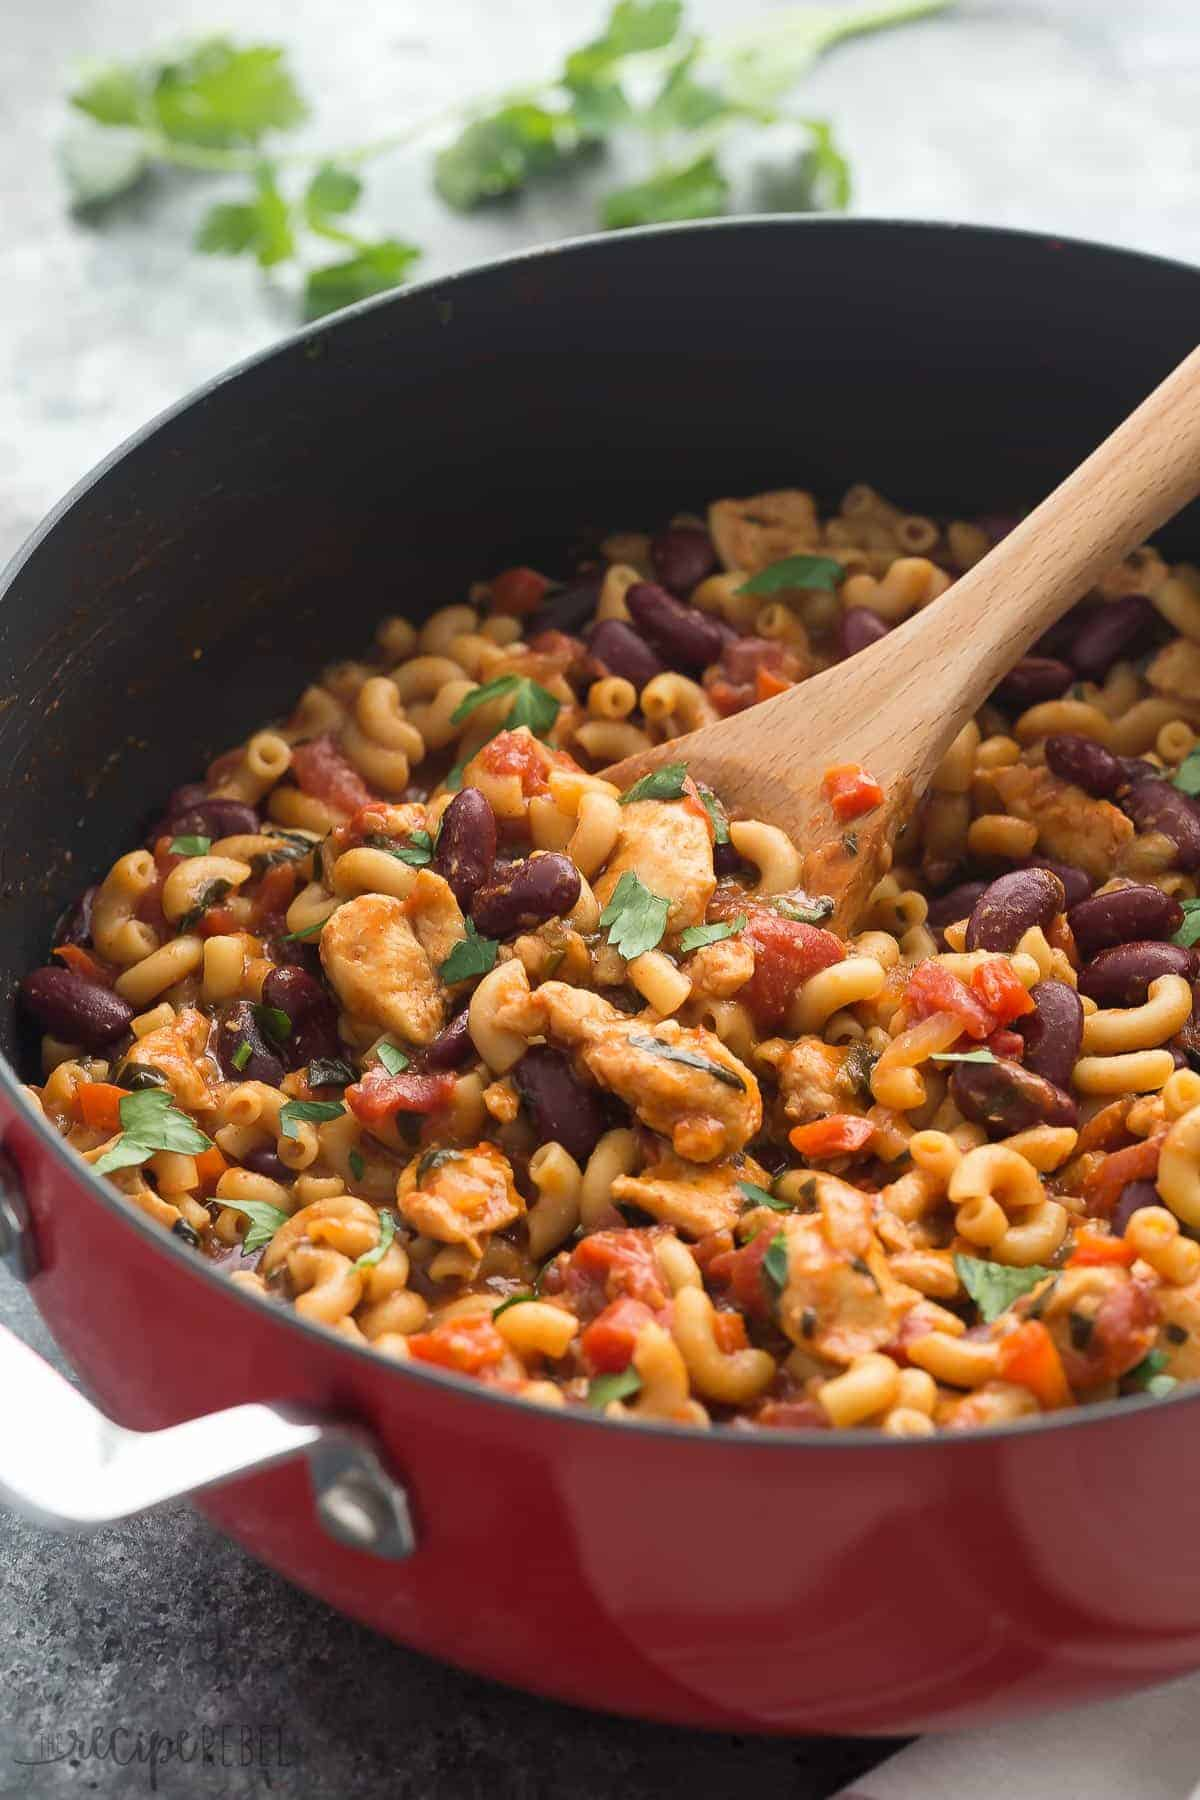 This One Pot BBQ Chicken Chili Mac is the perfect meal in one! It's loaded with protein, fiber, veggies and made in one skillet in 30 minutes! An easy, healthy weeknight meal.